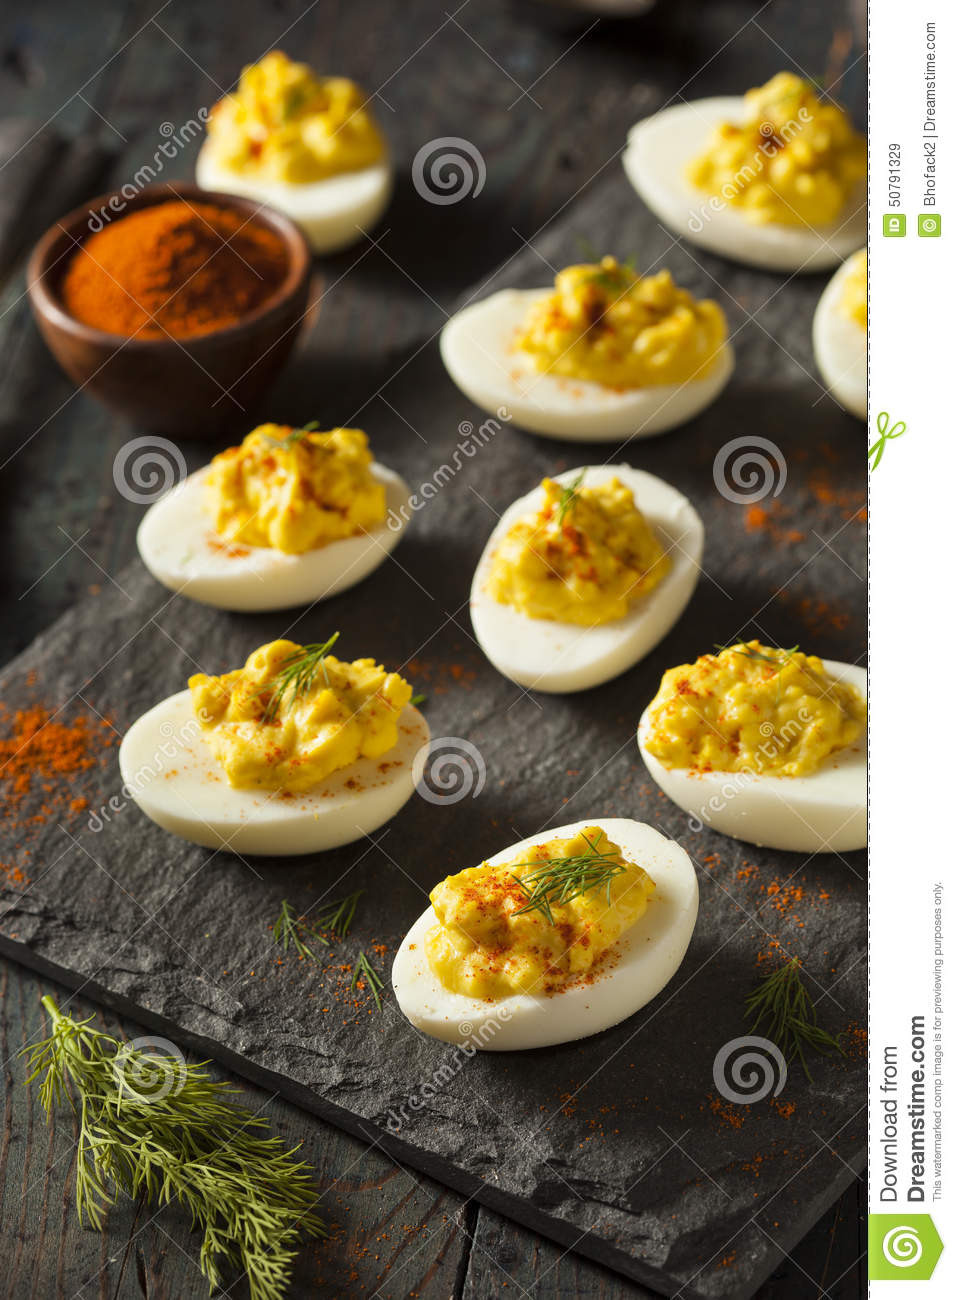 Spicy Deviled Eggs Royalty-Free Stock Photography | CartoonDealer.com #56984033